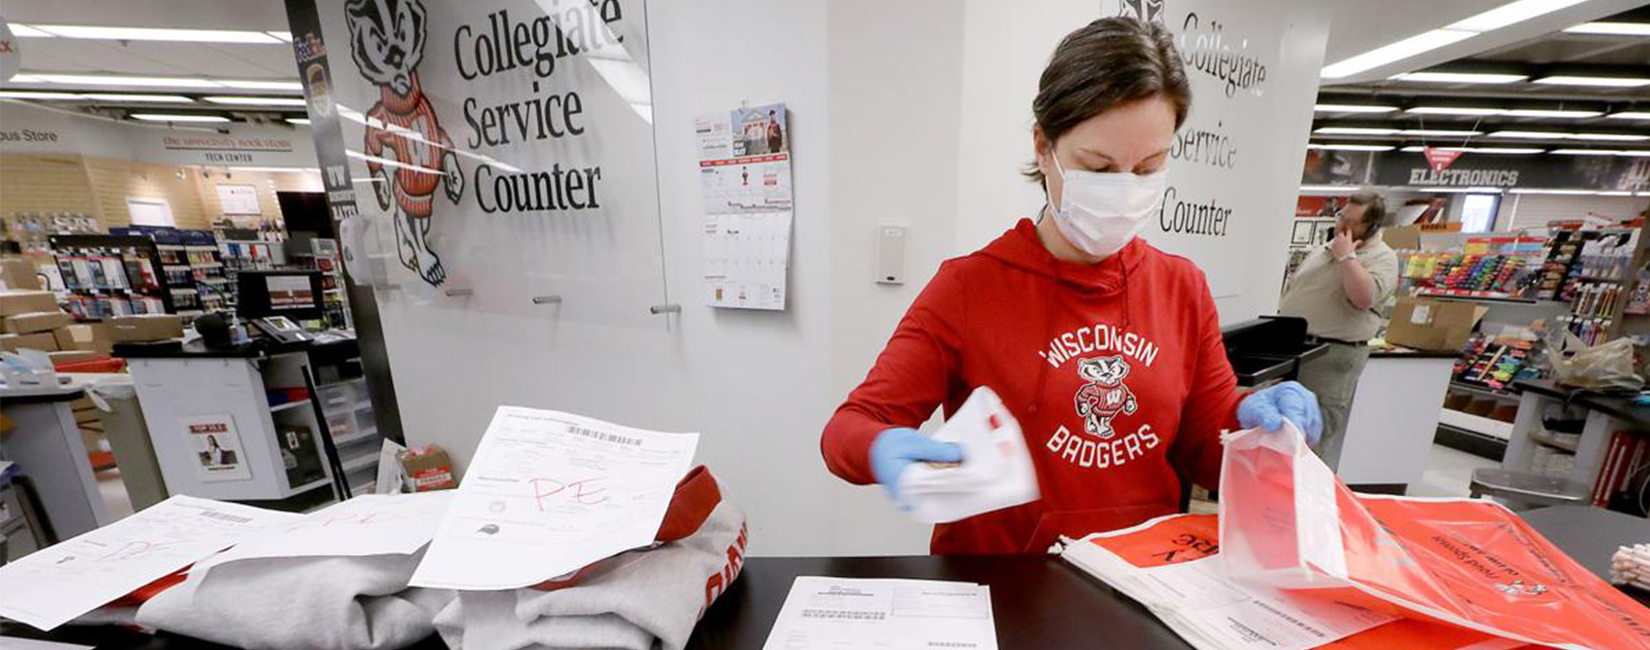 U of Wisconsin student working at store.